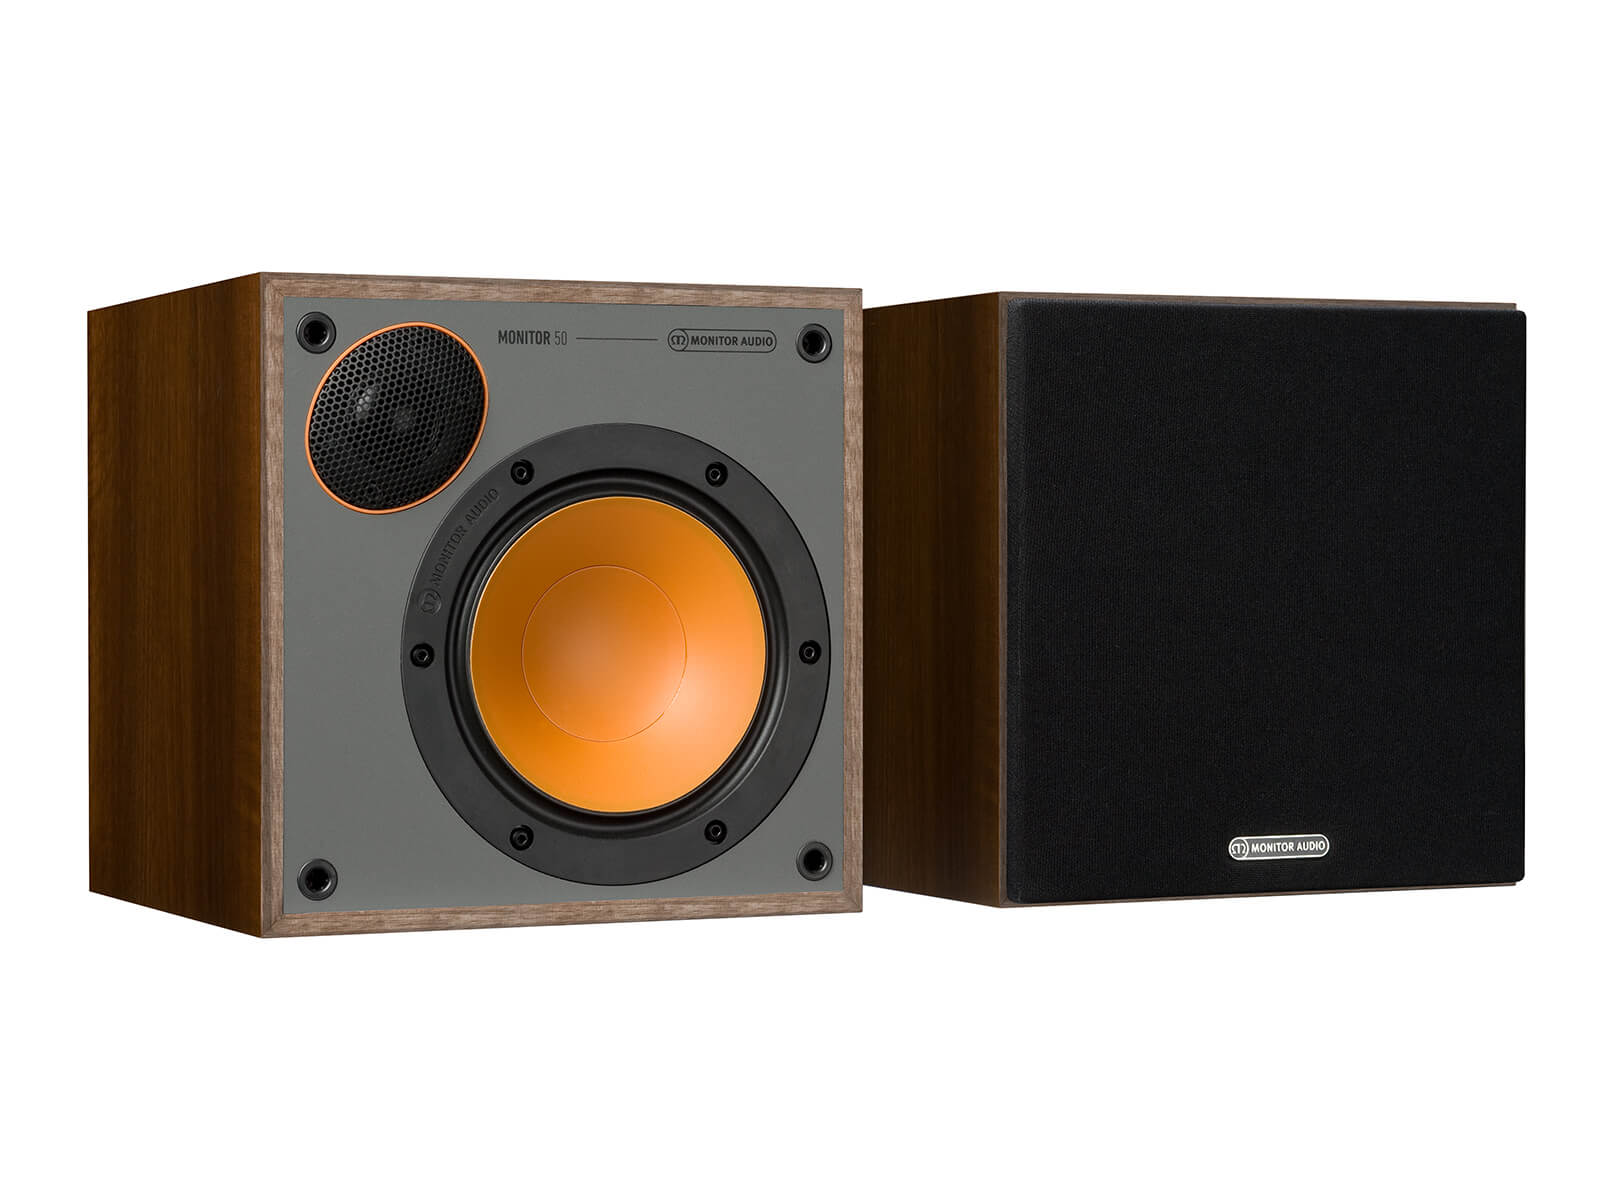 Monitor 50, bookshelf speakers, with and without grille in a walnut vinyl finish.